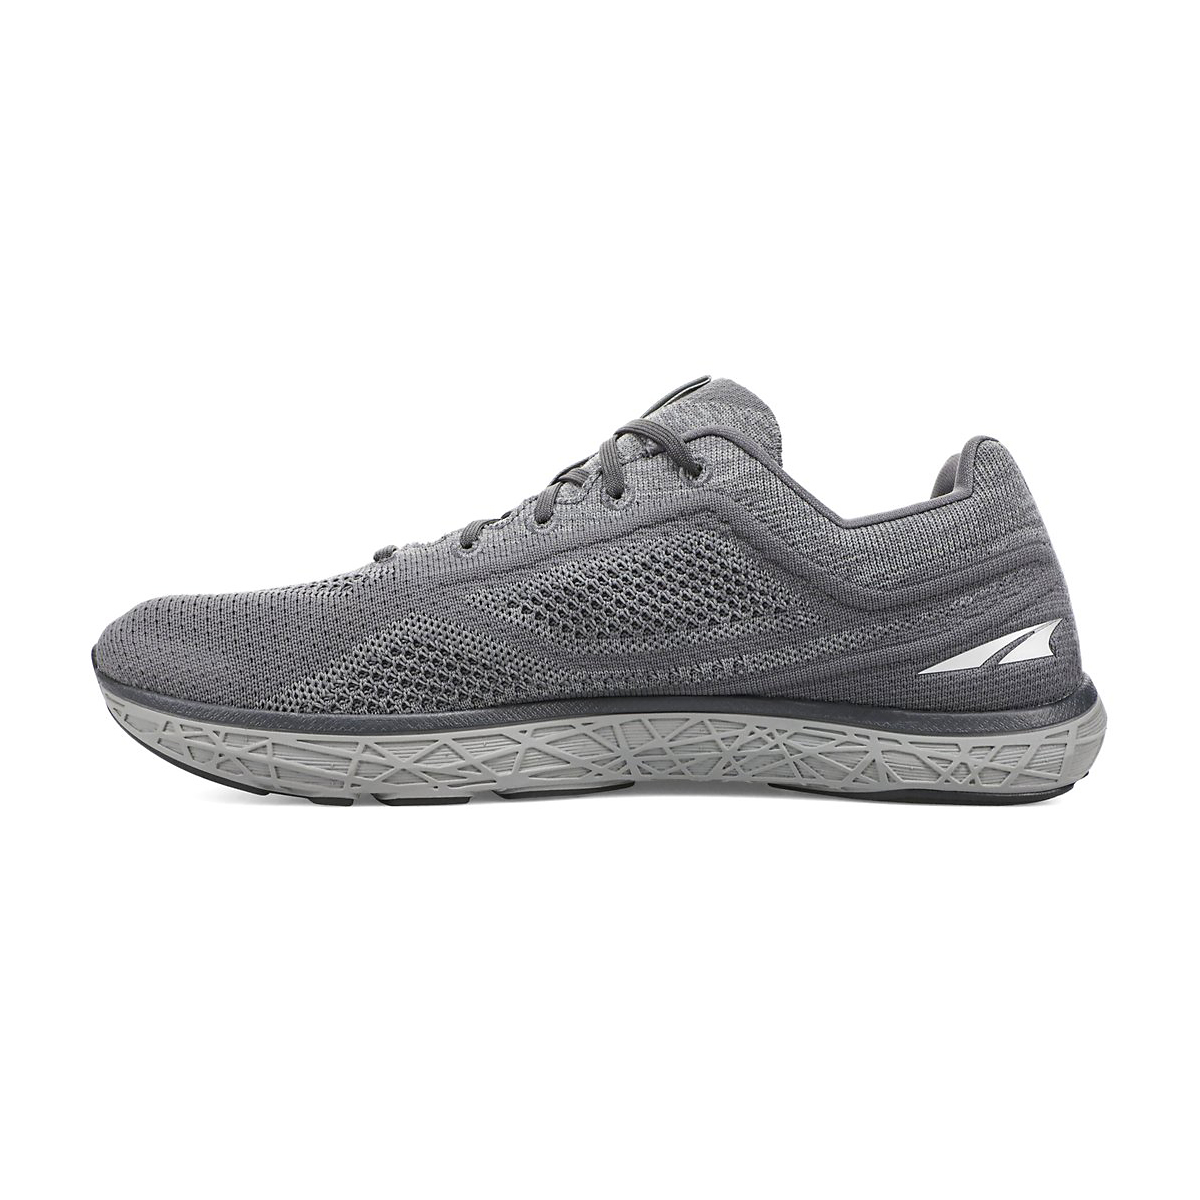 Men's Altra Escalante 2.5 Running Shoe - Color: Gray - Size: 7 - Width: Regular, Gray, large, image 2